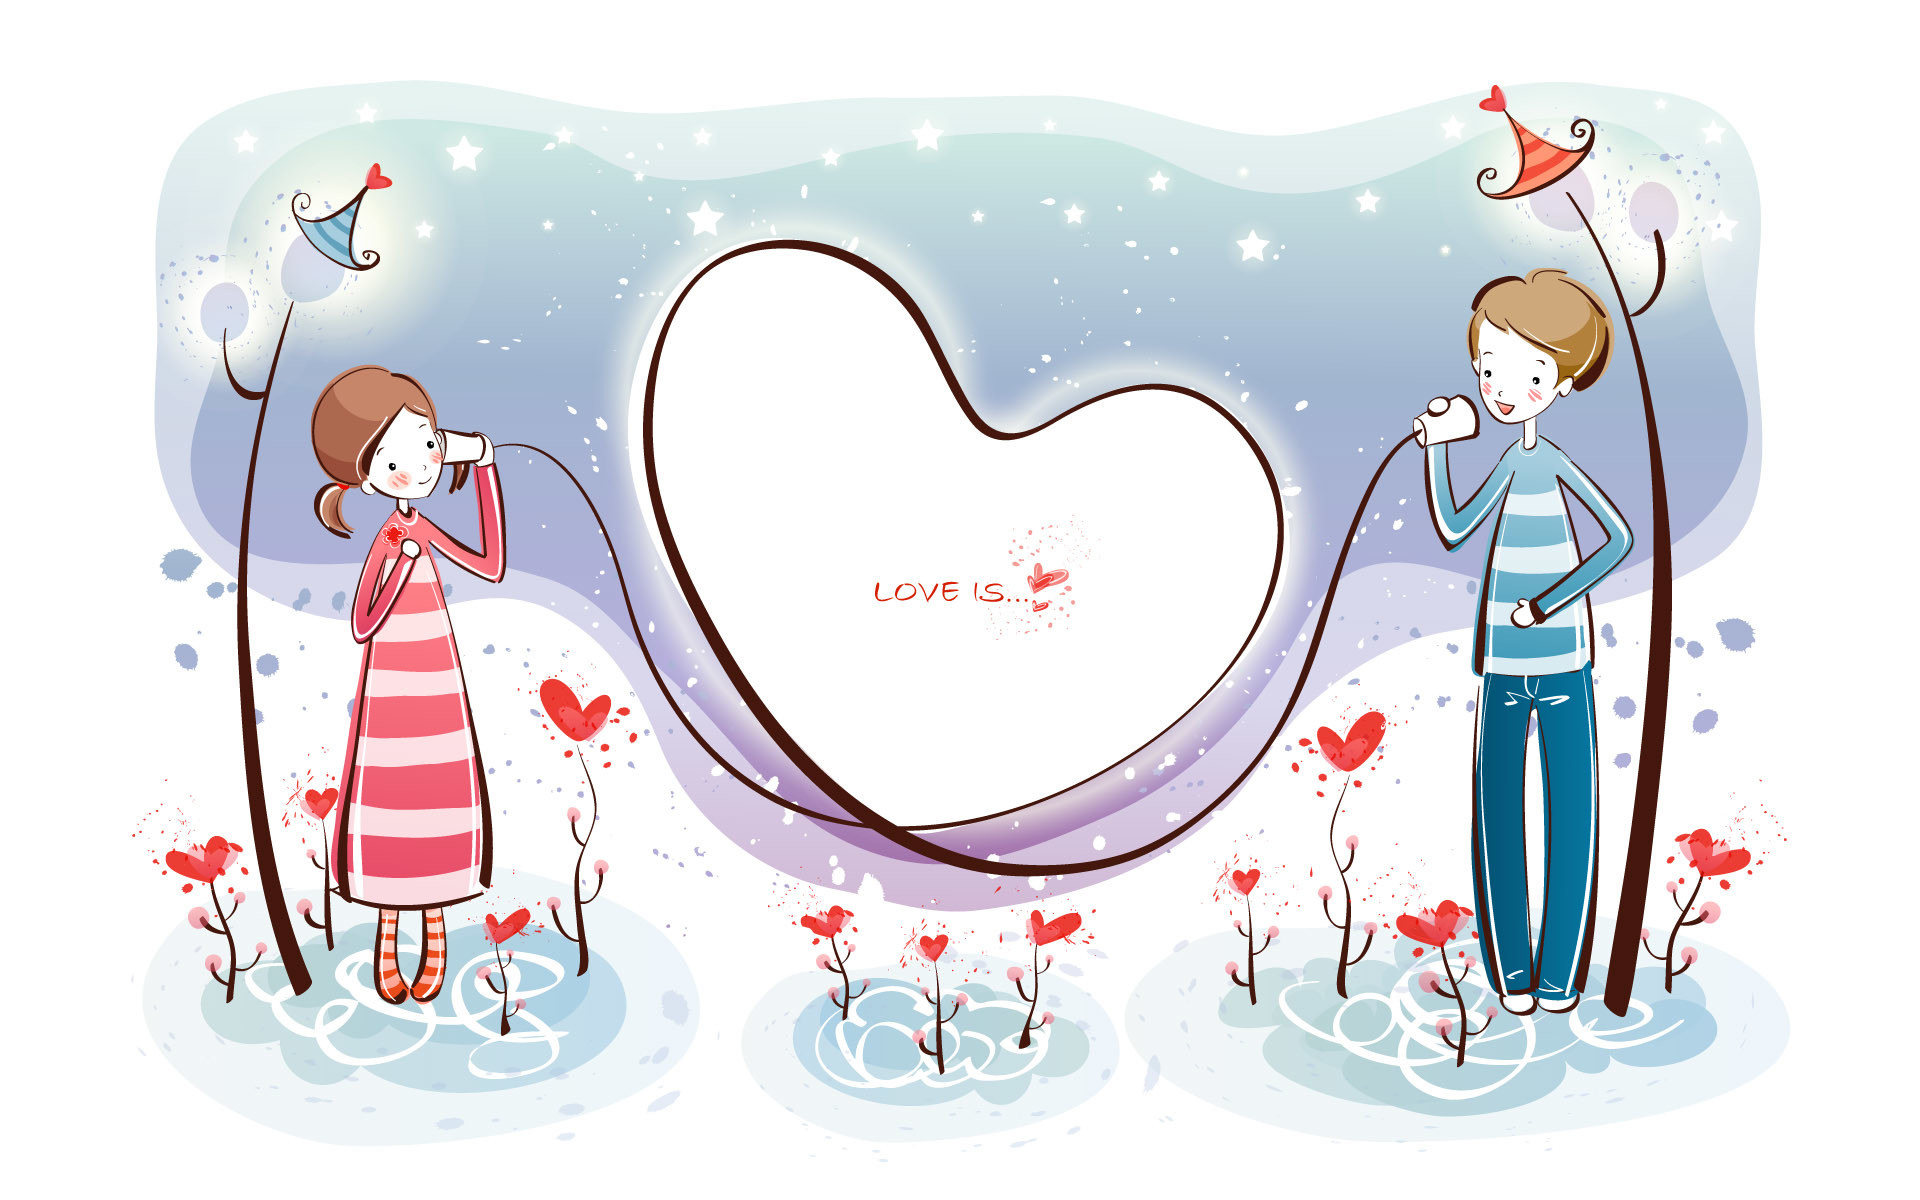 1920x1200 Wallpapers holiday valentine vector lovers ktqrj customizable cartoon couple